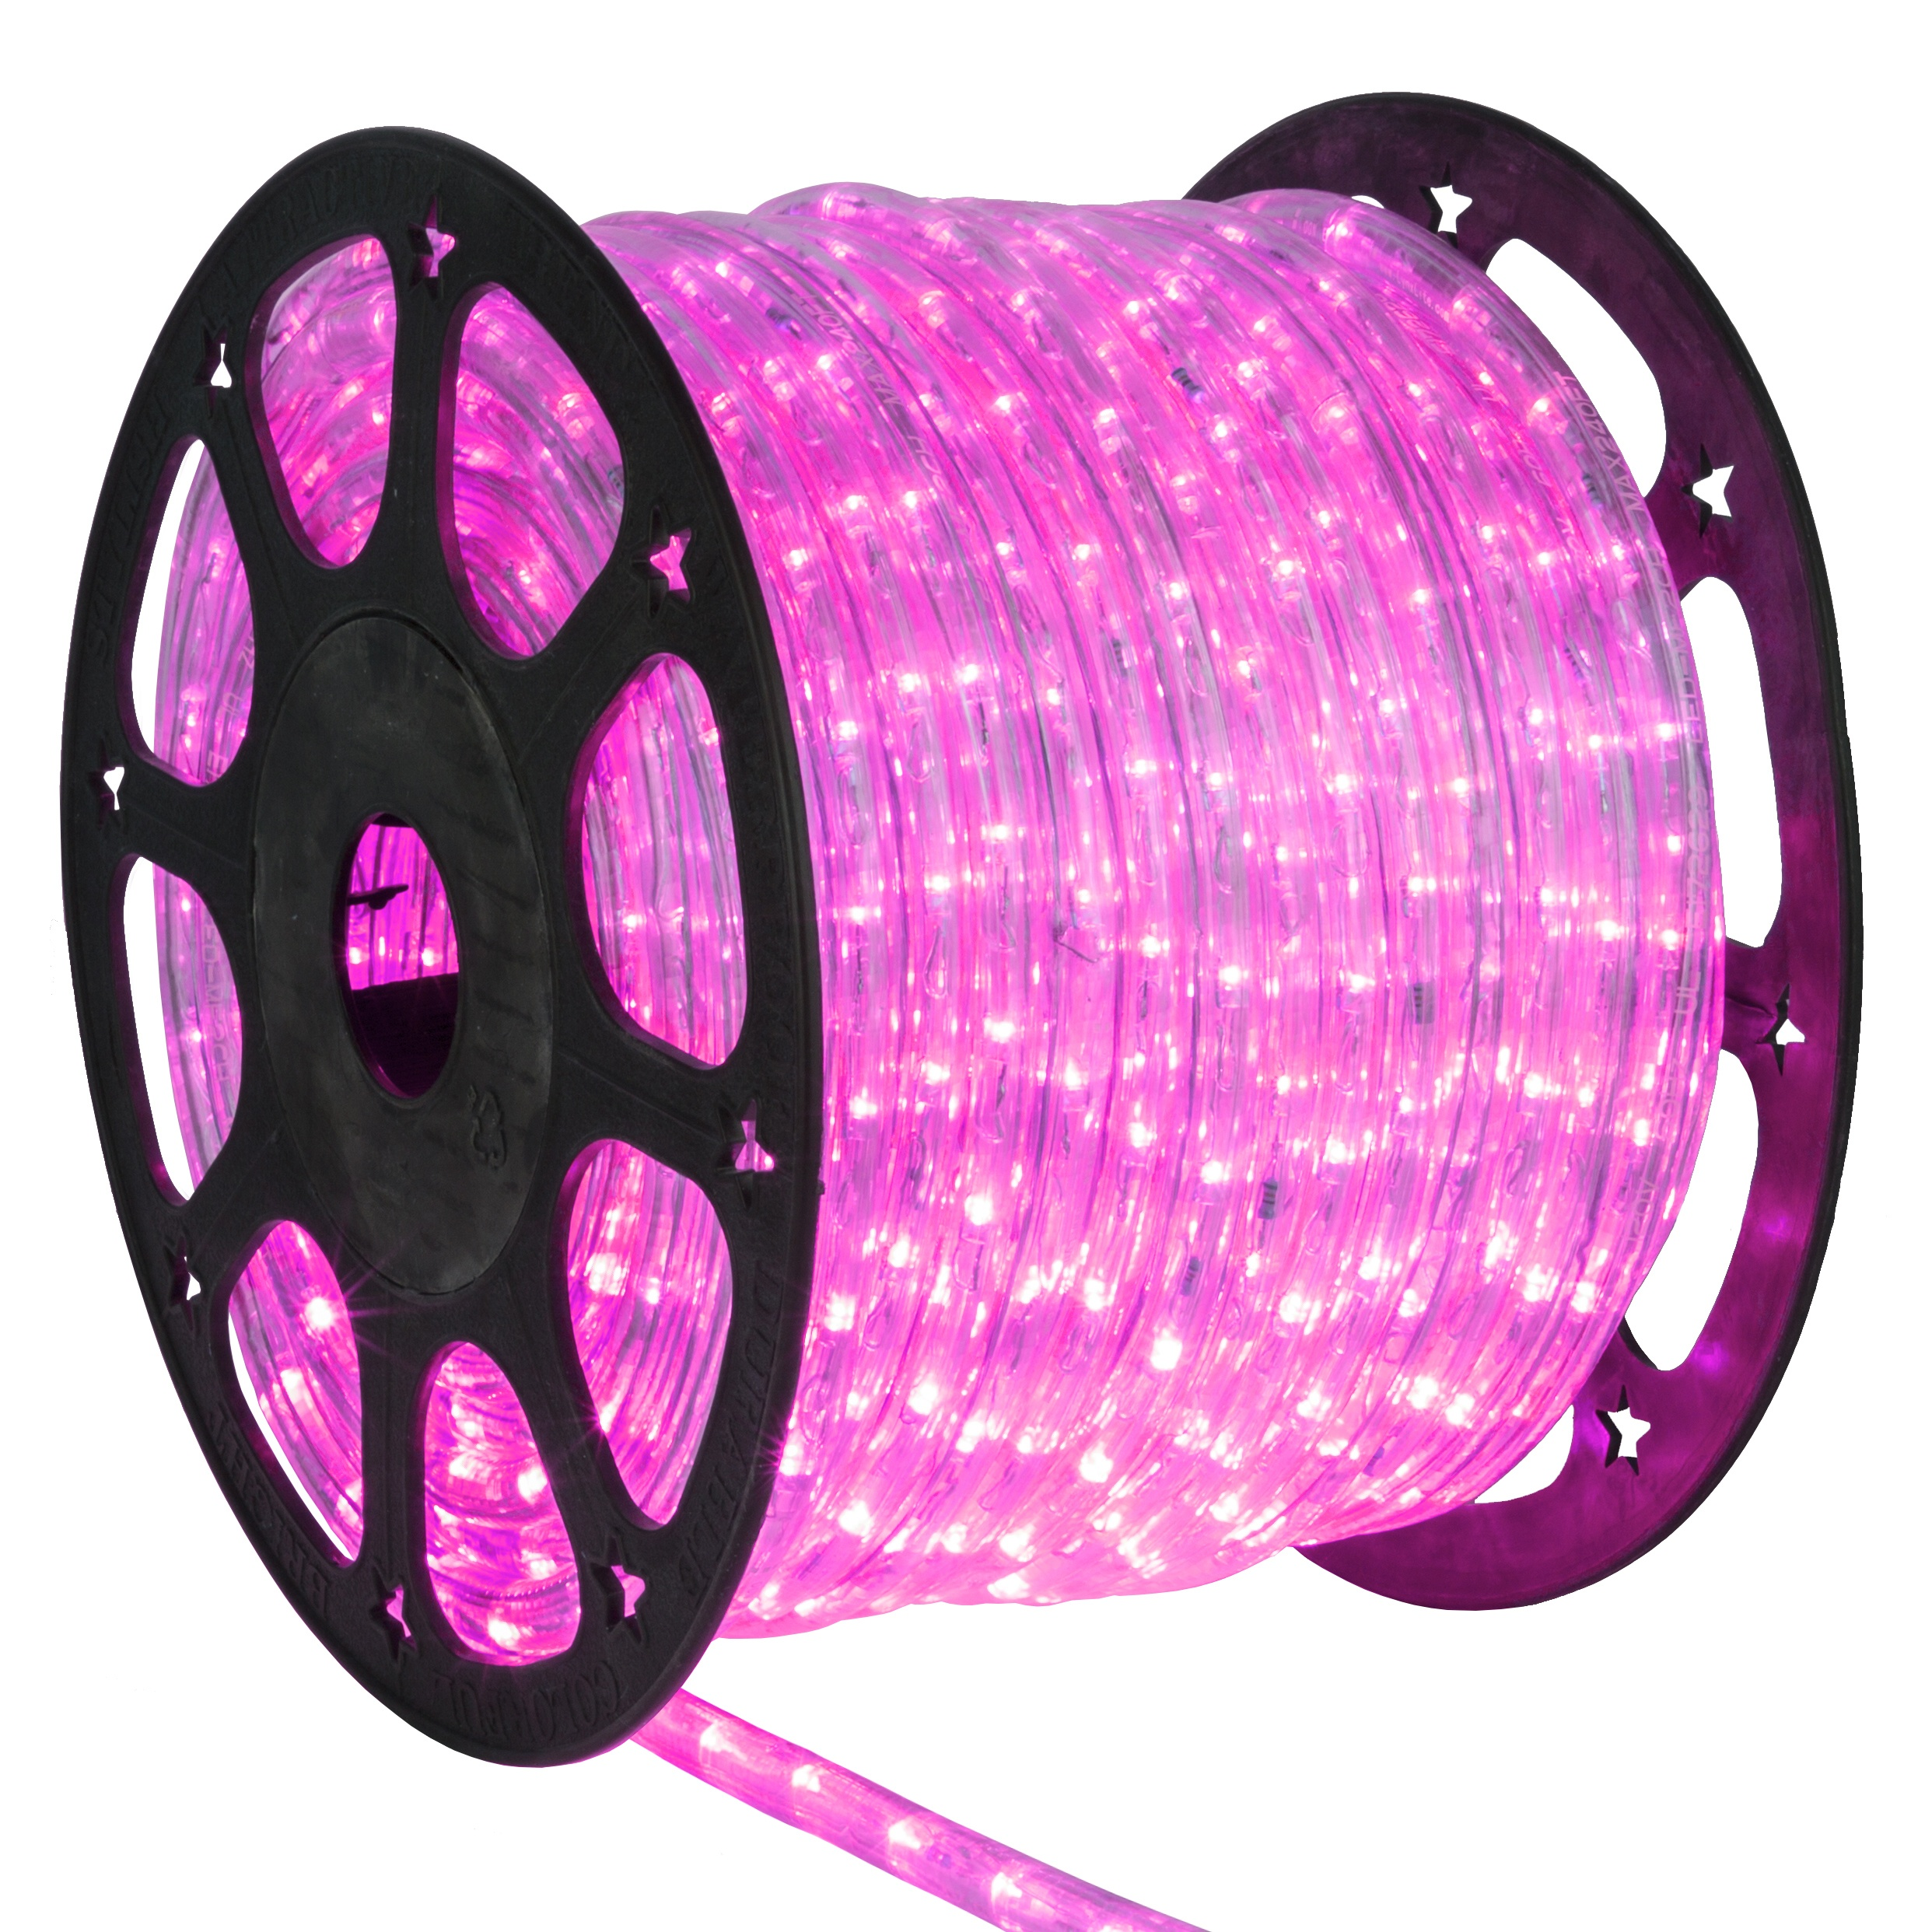 LED Rope Lights - 150\u0027 Pink LED Rope Light Commercial Spool, 120 Volt